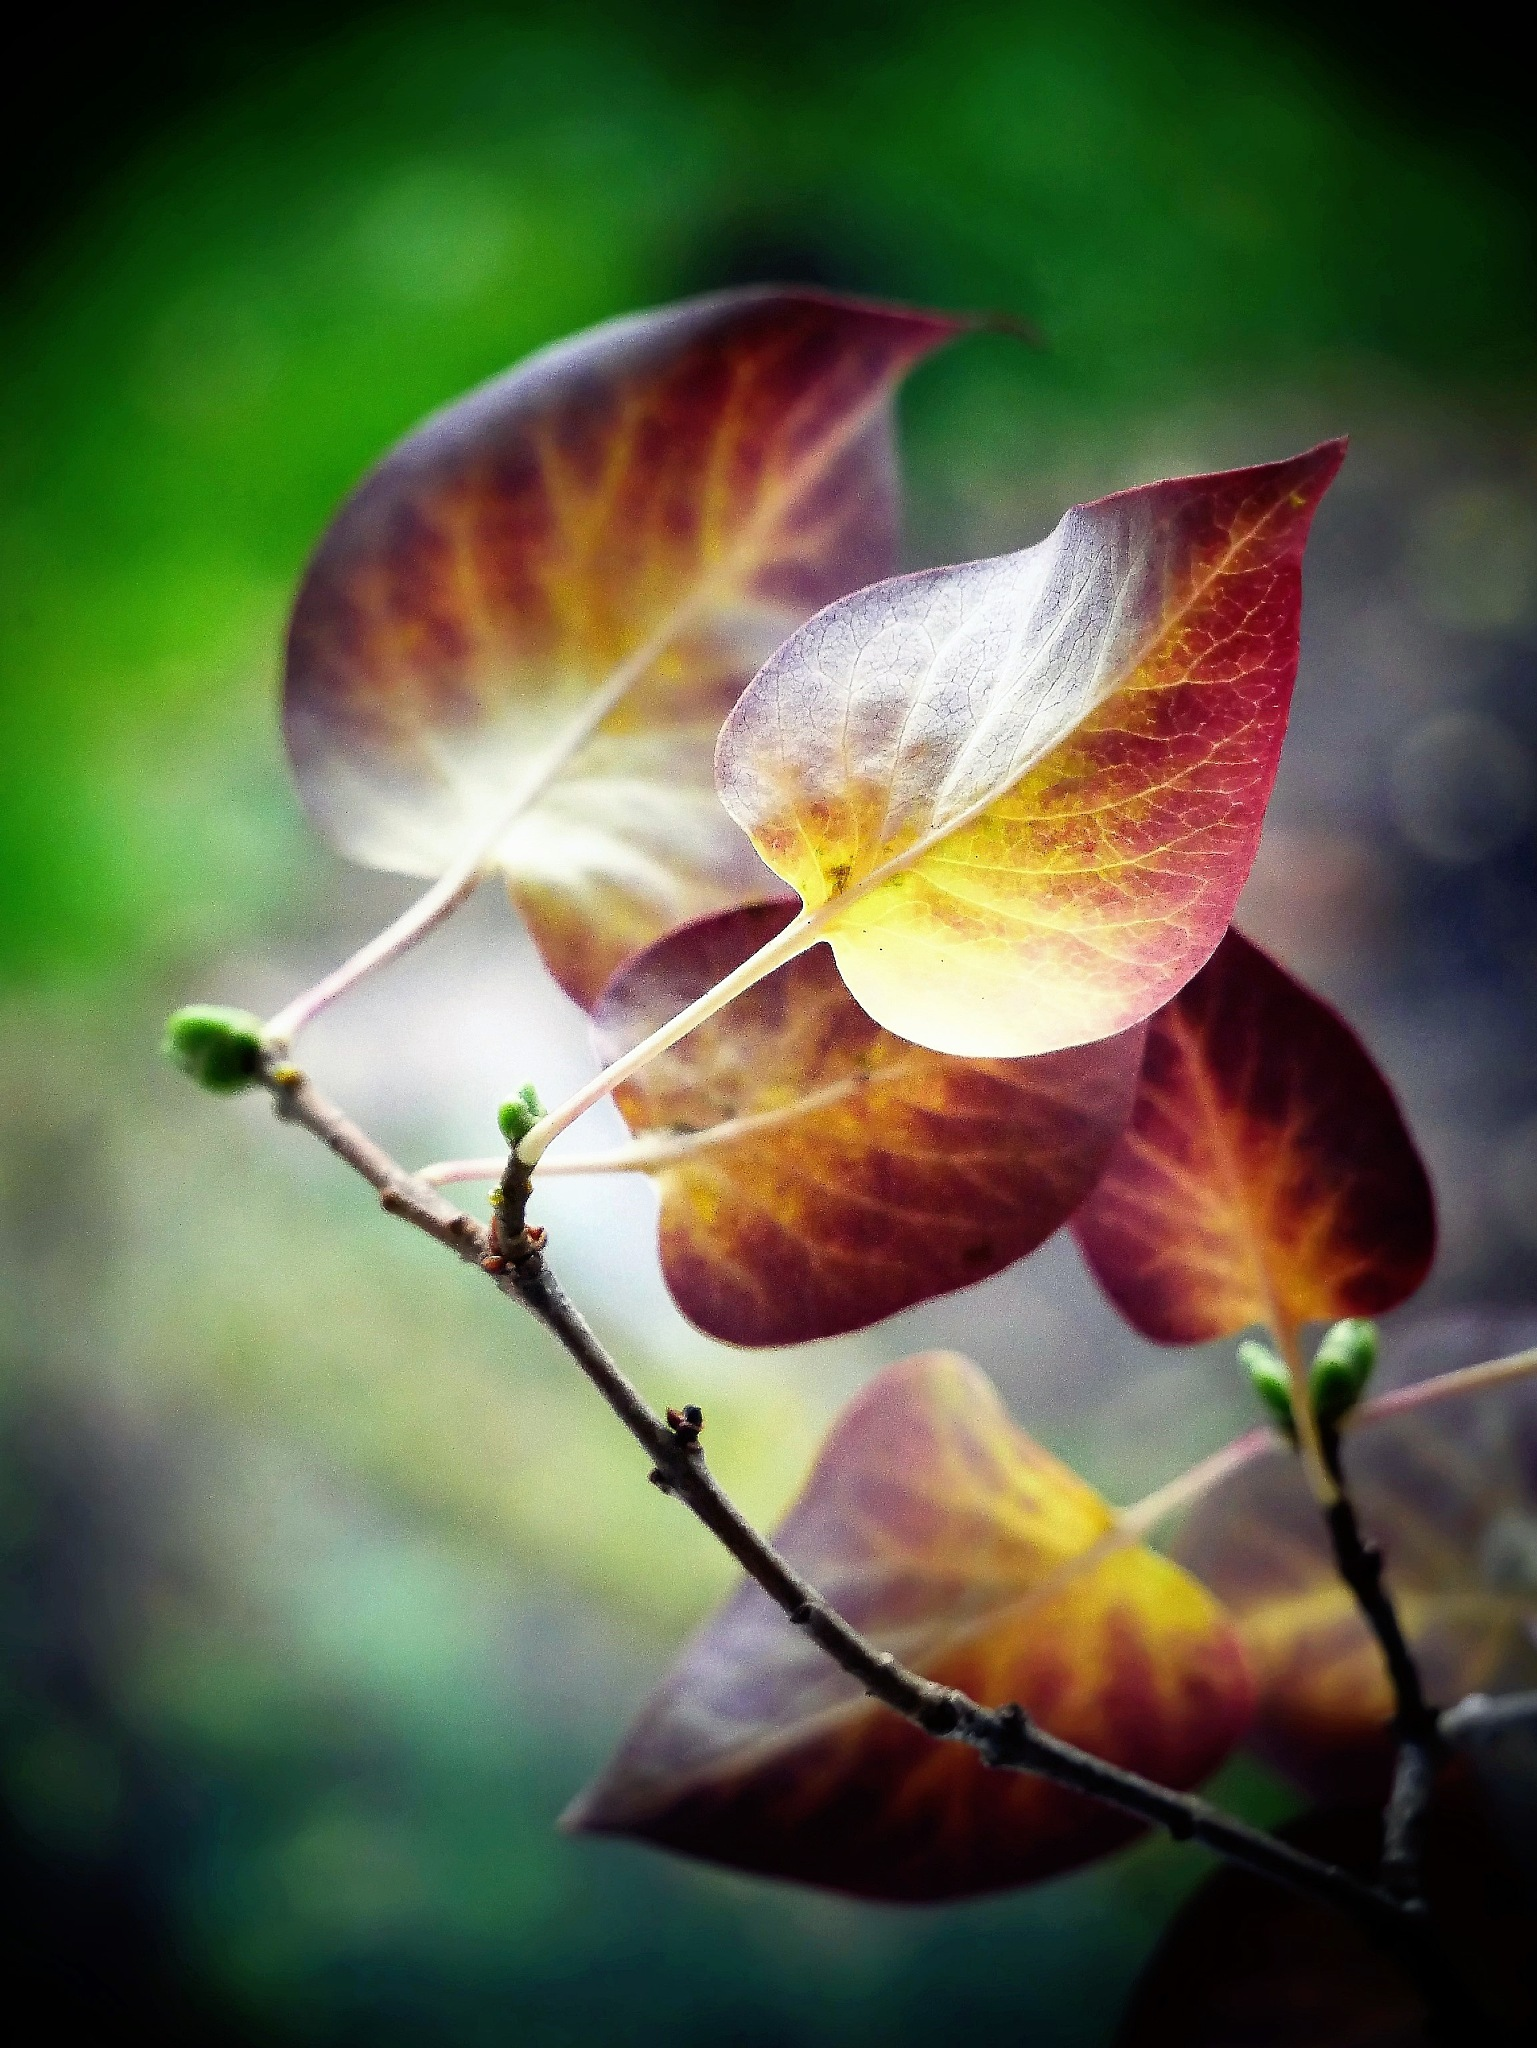 Another autumn pic today! by Cicki Jarneberg